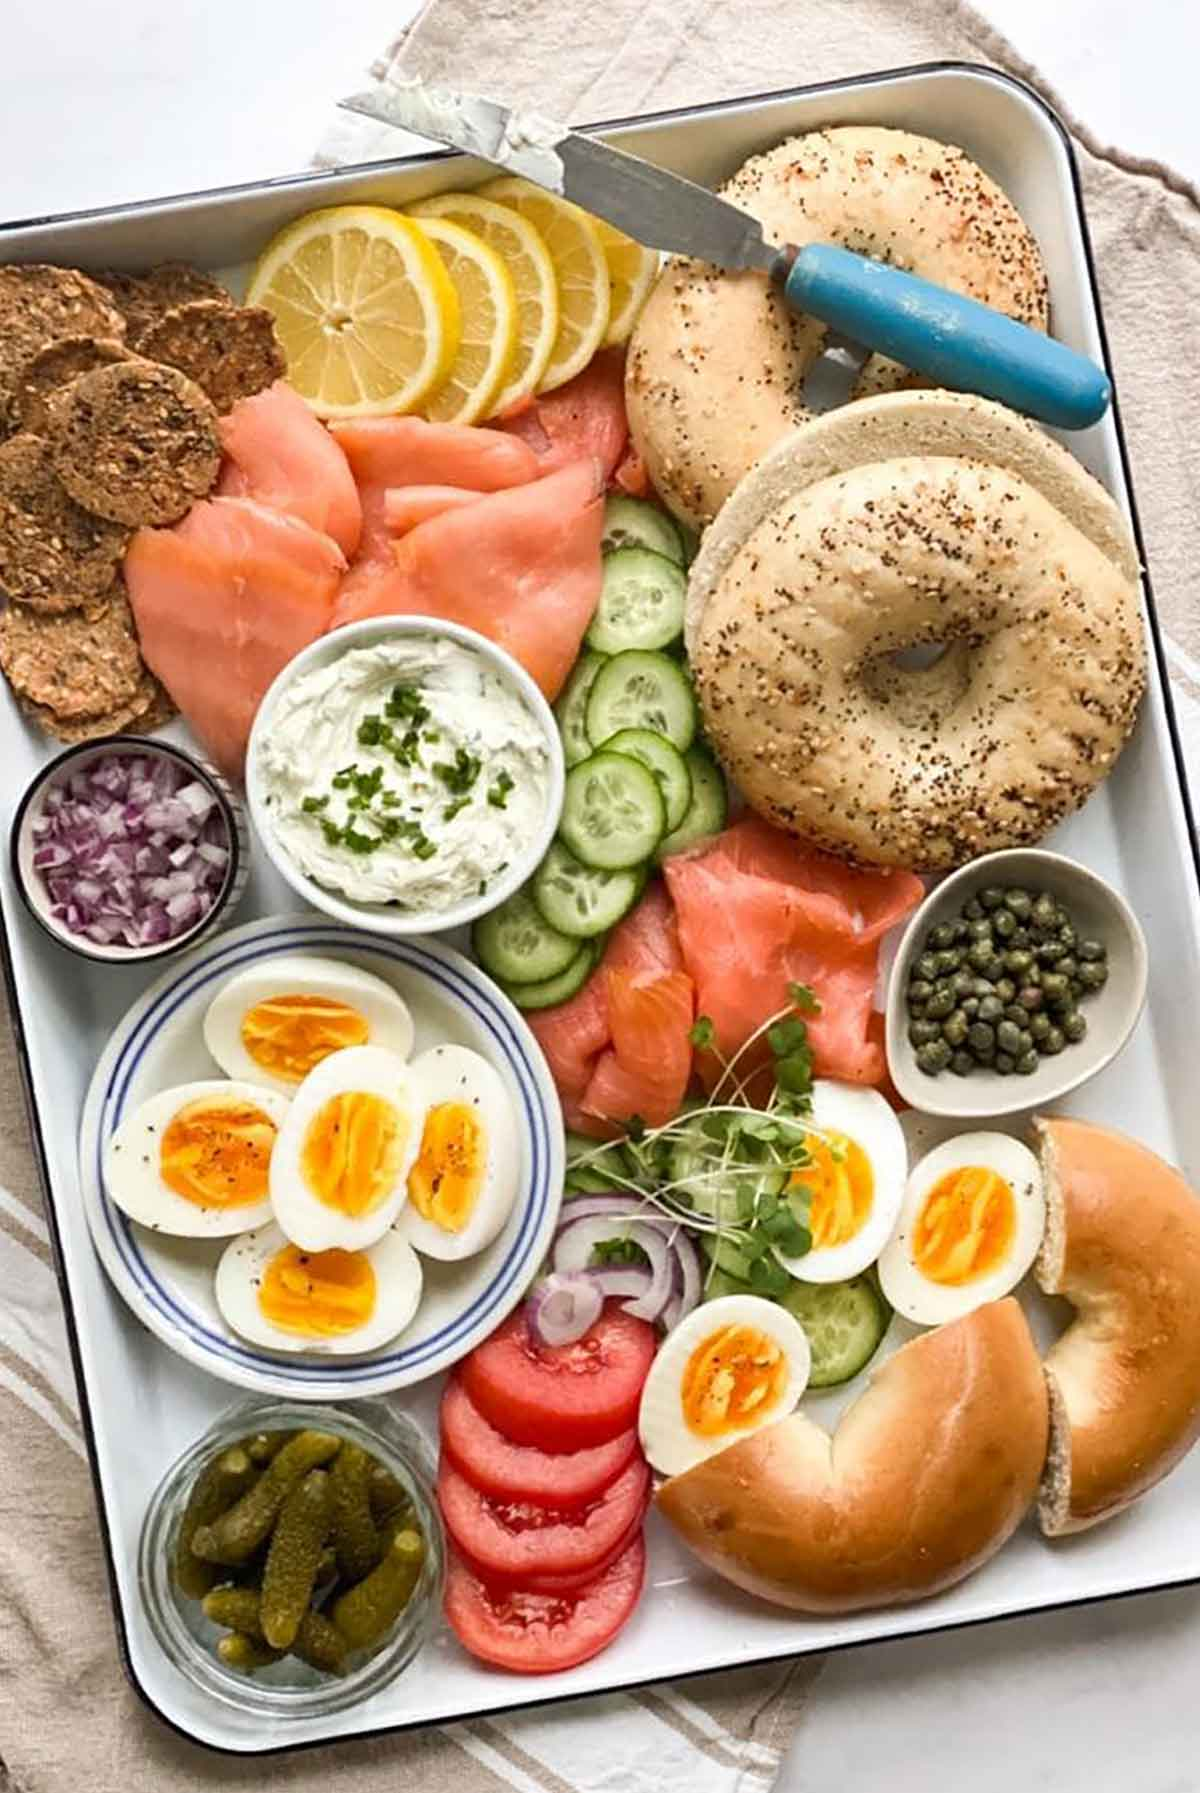 A tray of bagels with scattered, assorted bagel toppings.